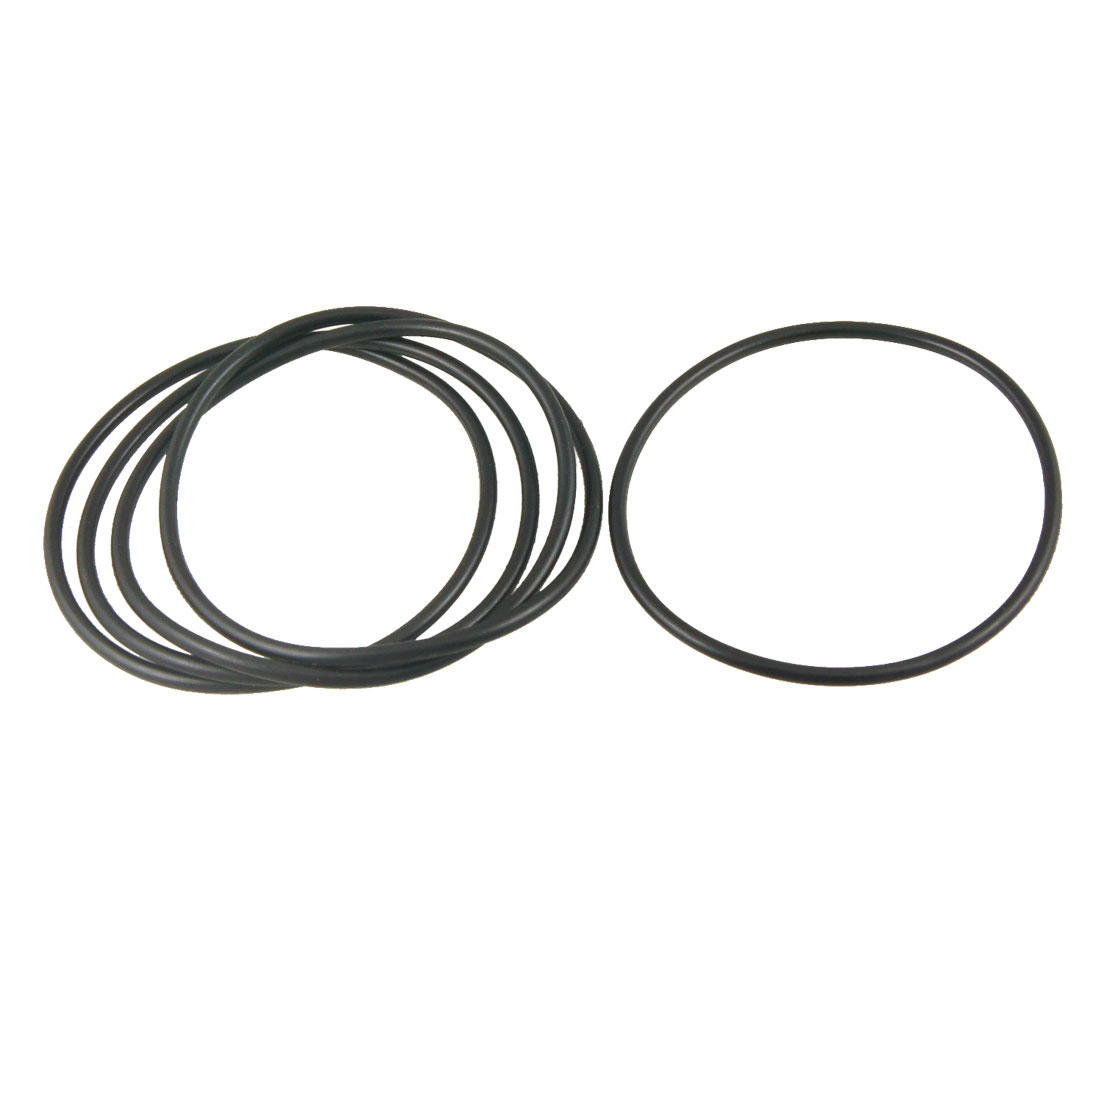 5 Pcs Nitrile Rubber O Rings Oil Sealing Gasket Black 100mm x 4mm